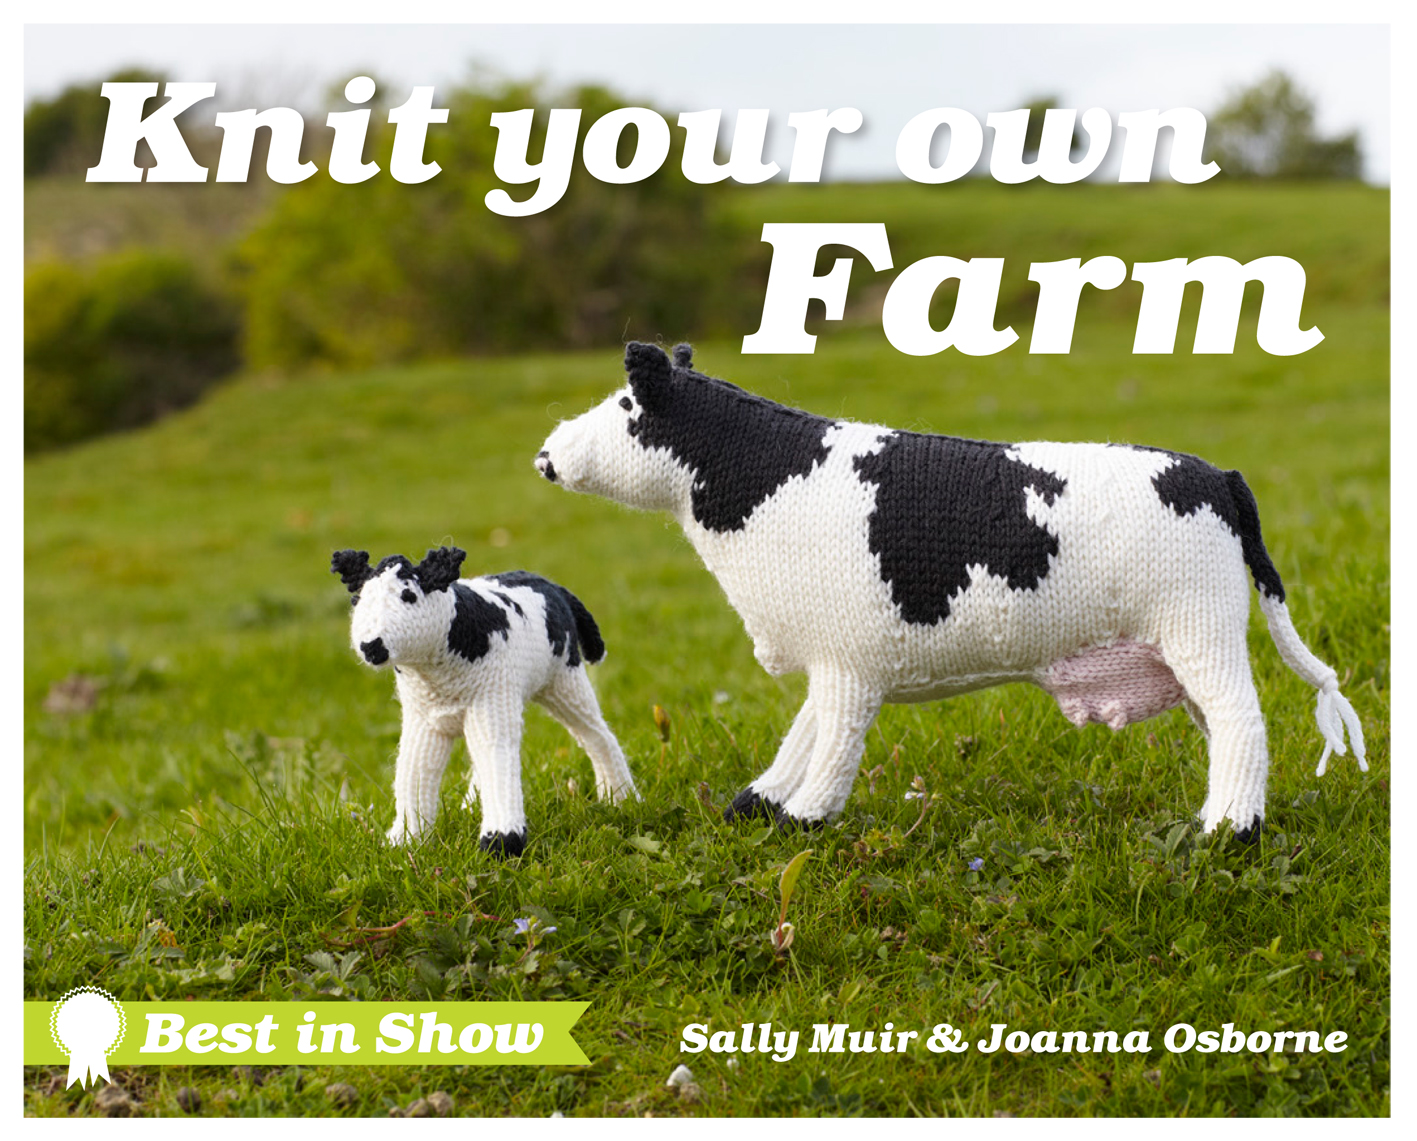 Best in Show: Knit Your Own Farm